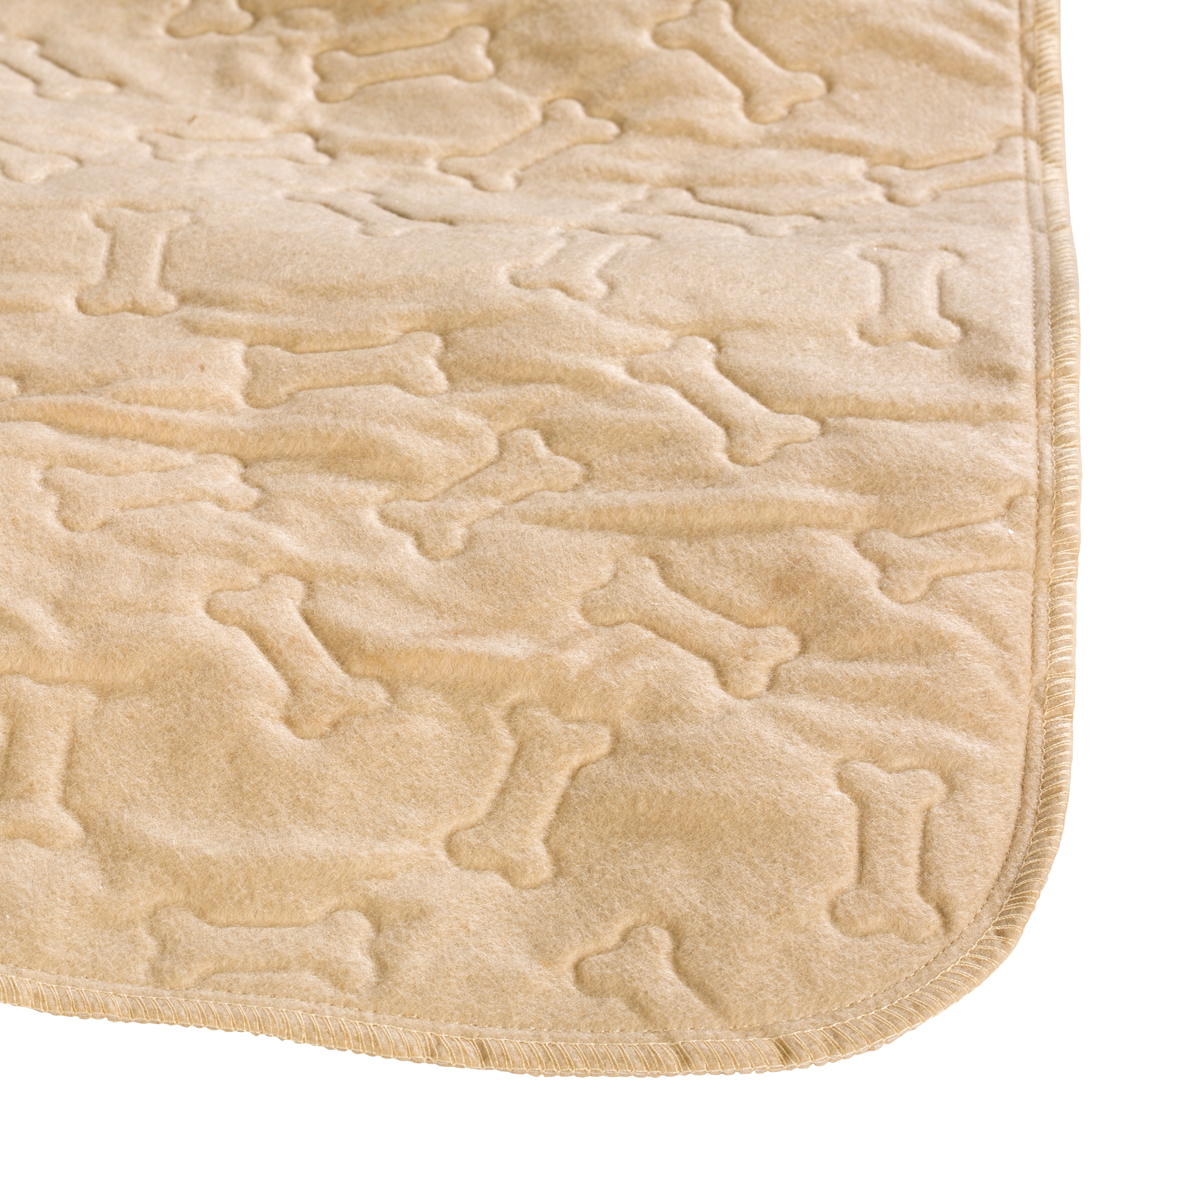 Tall Tails Waterproof Dog Pad - Tan